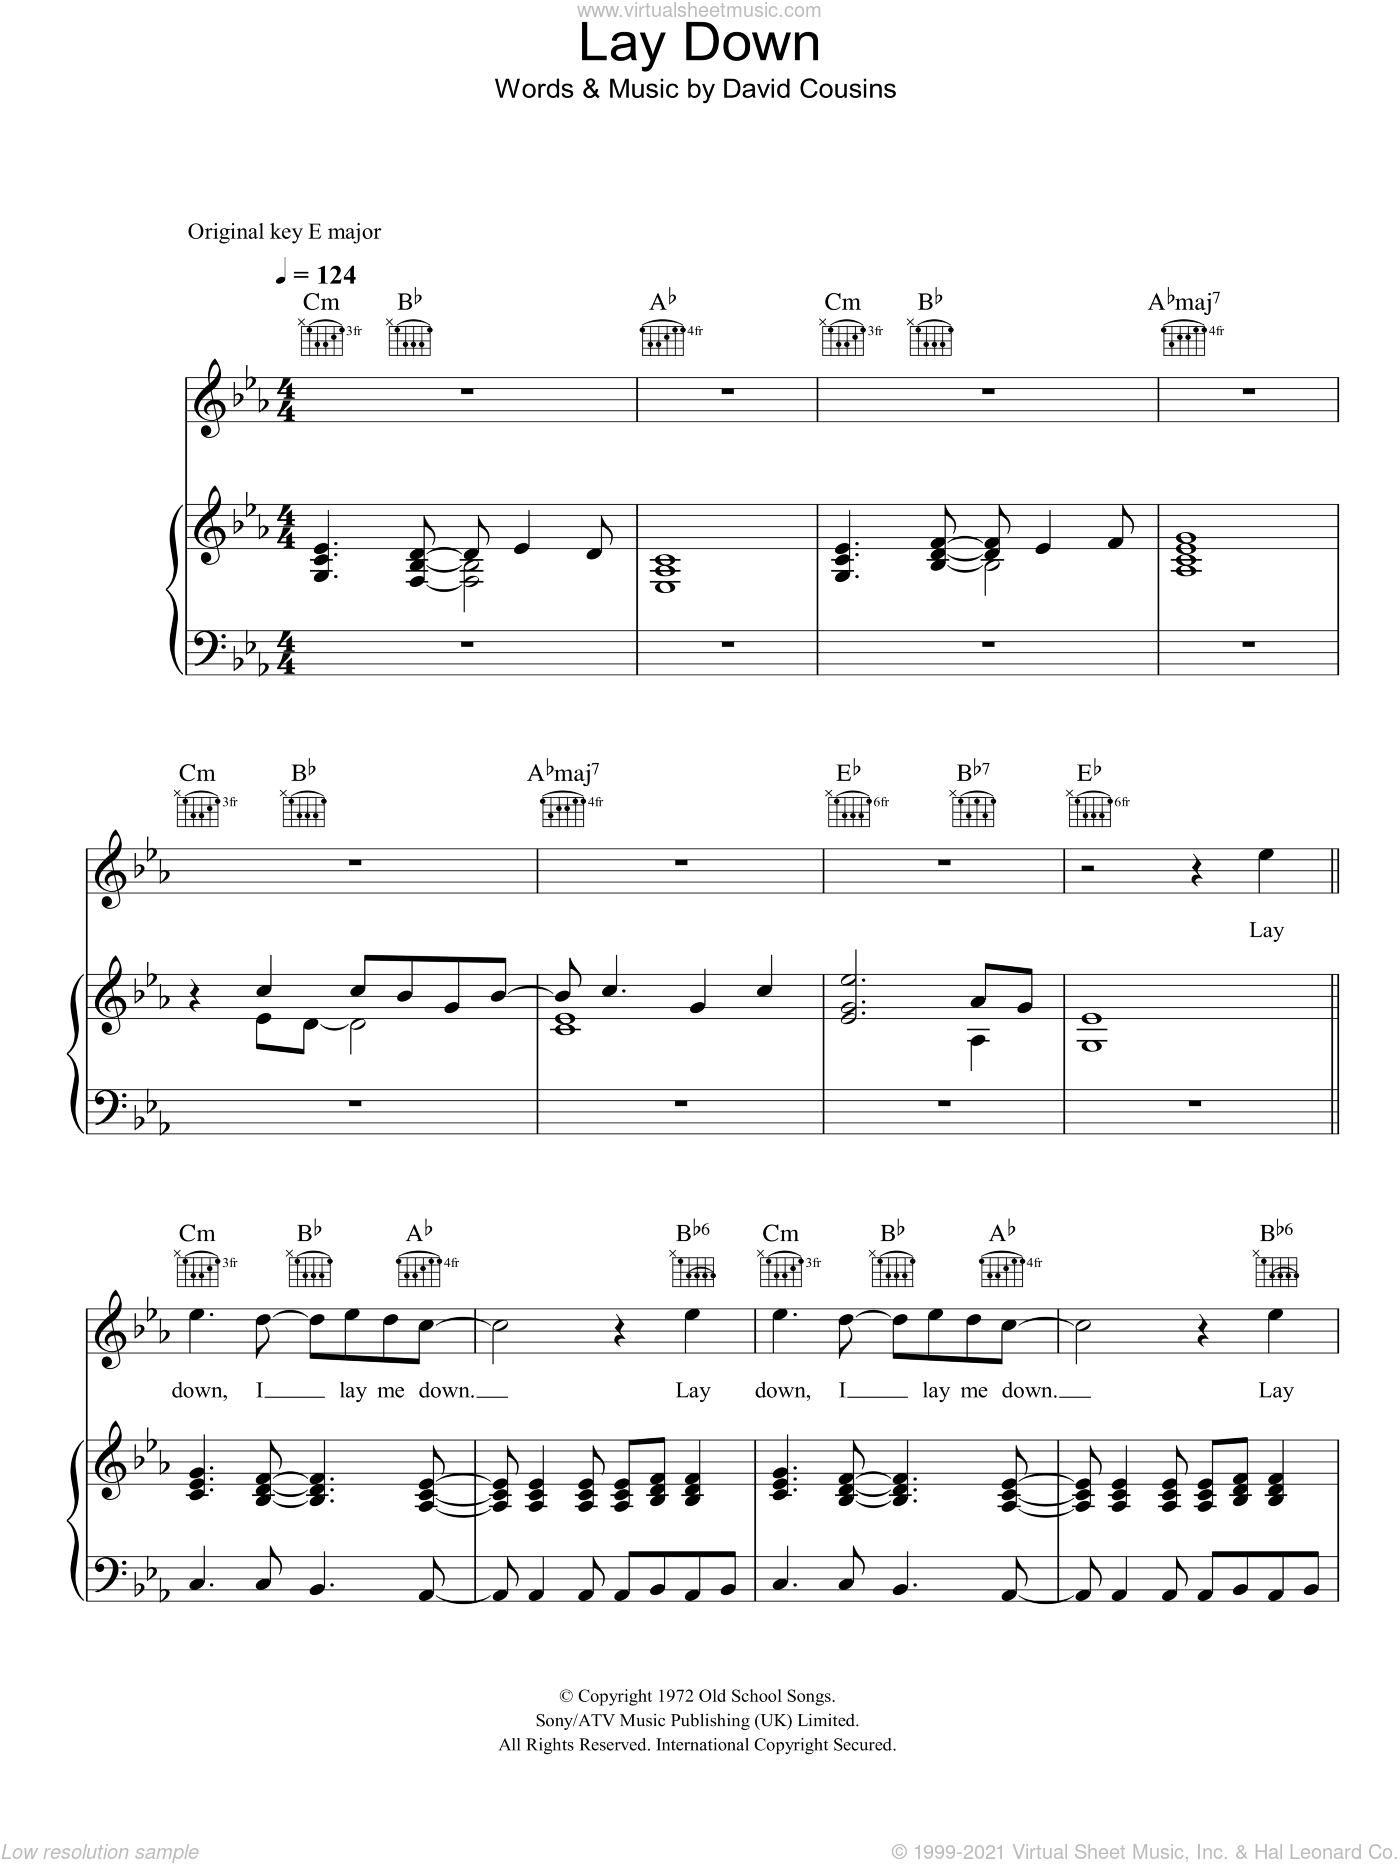 Lay Down sheet music for voice, piano or guitar by David Cousins